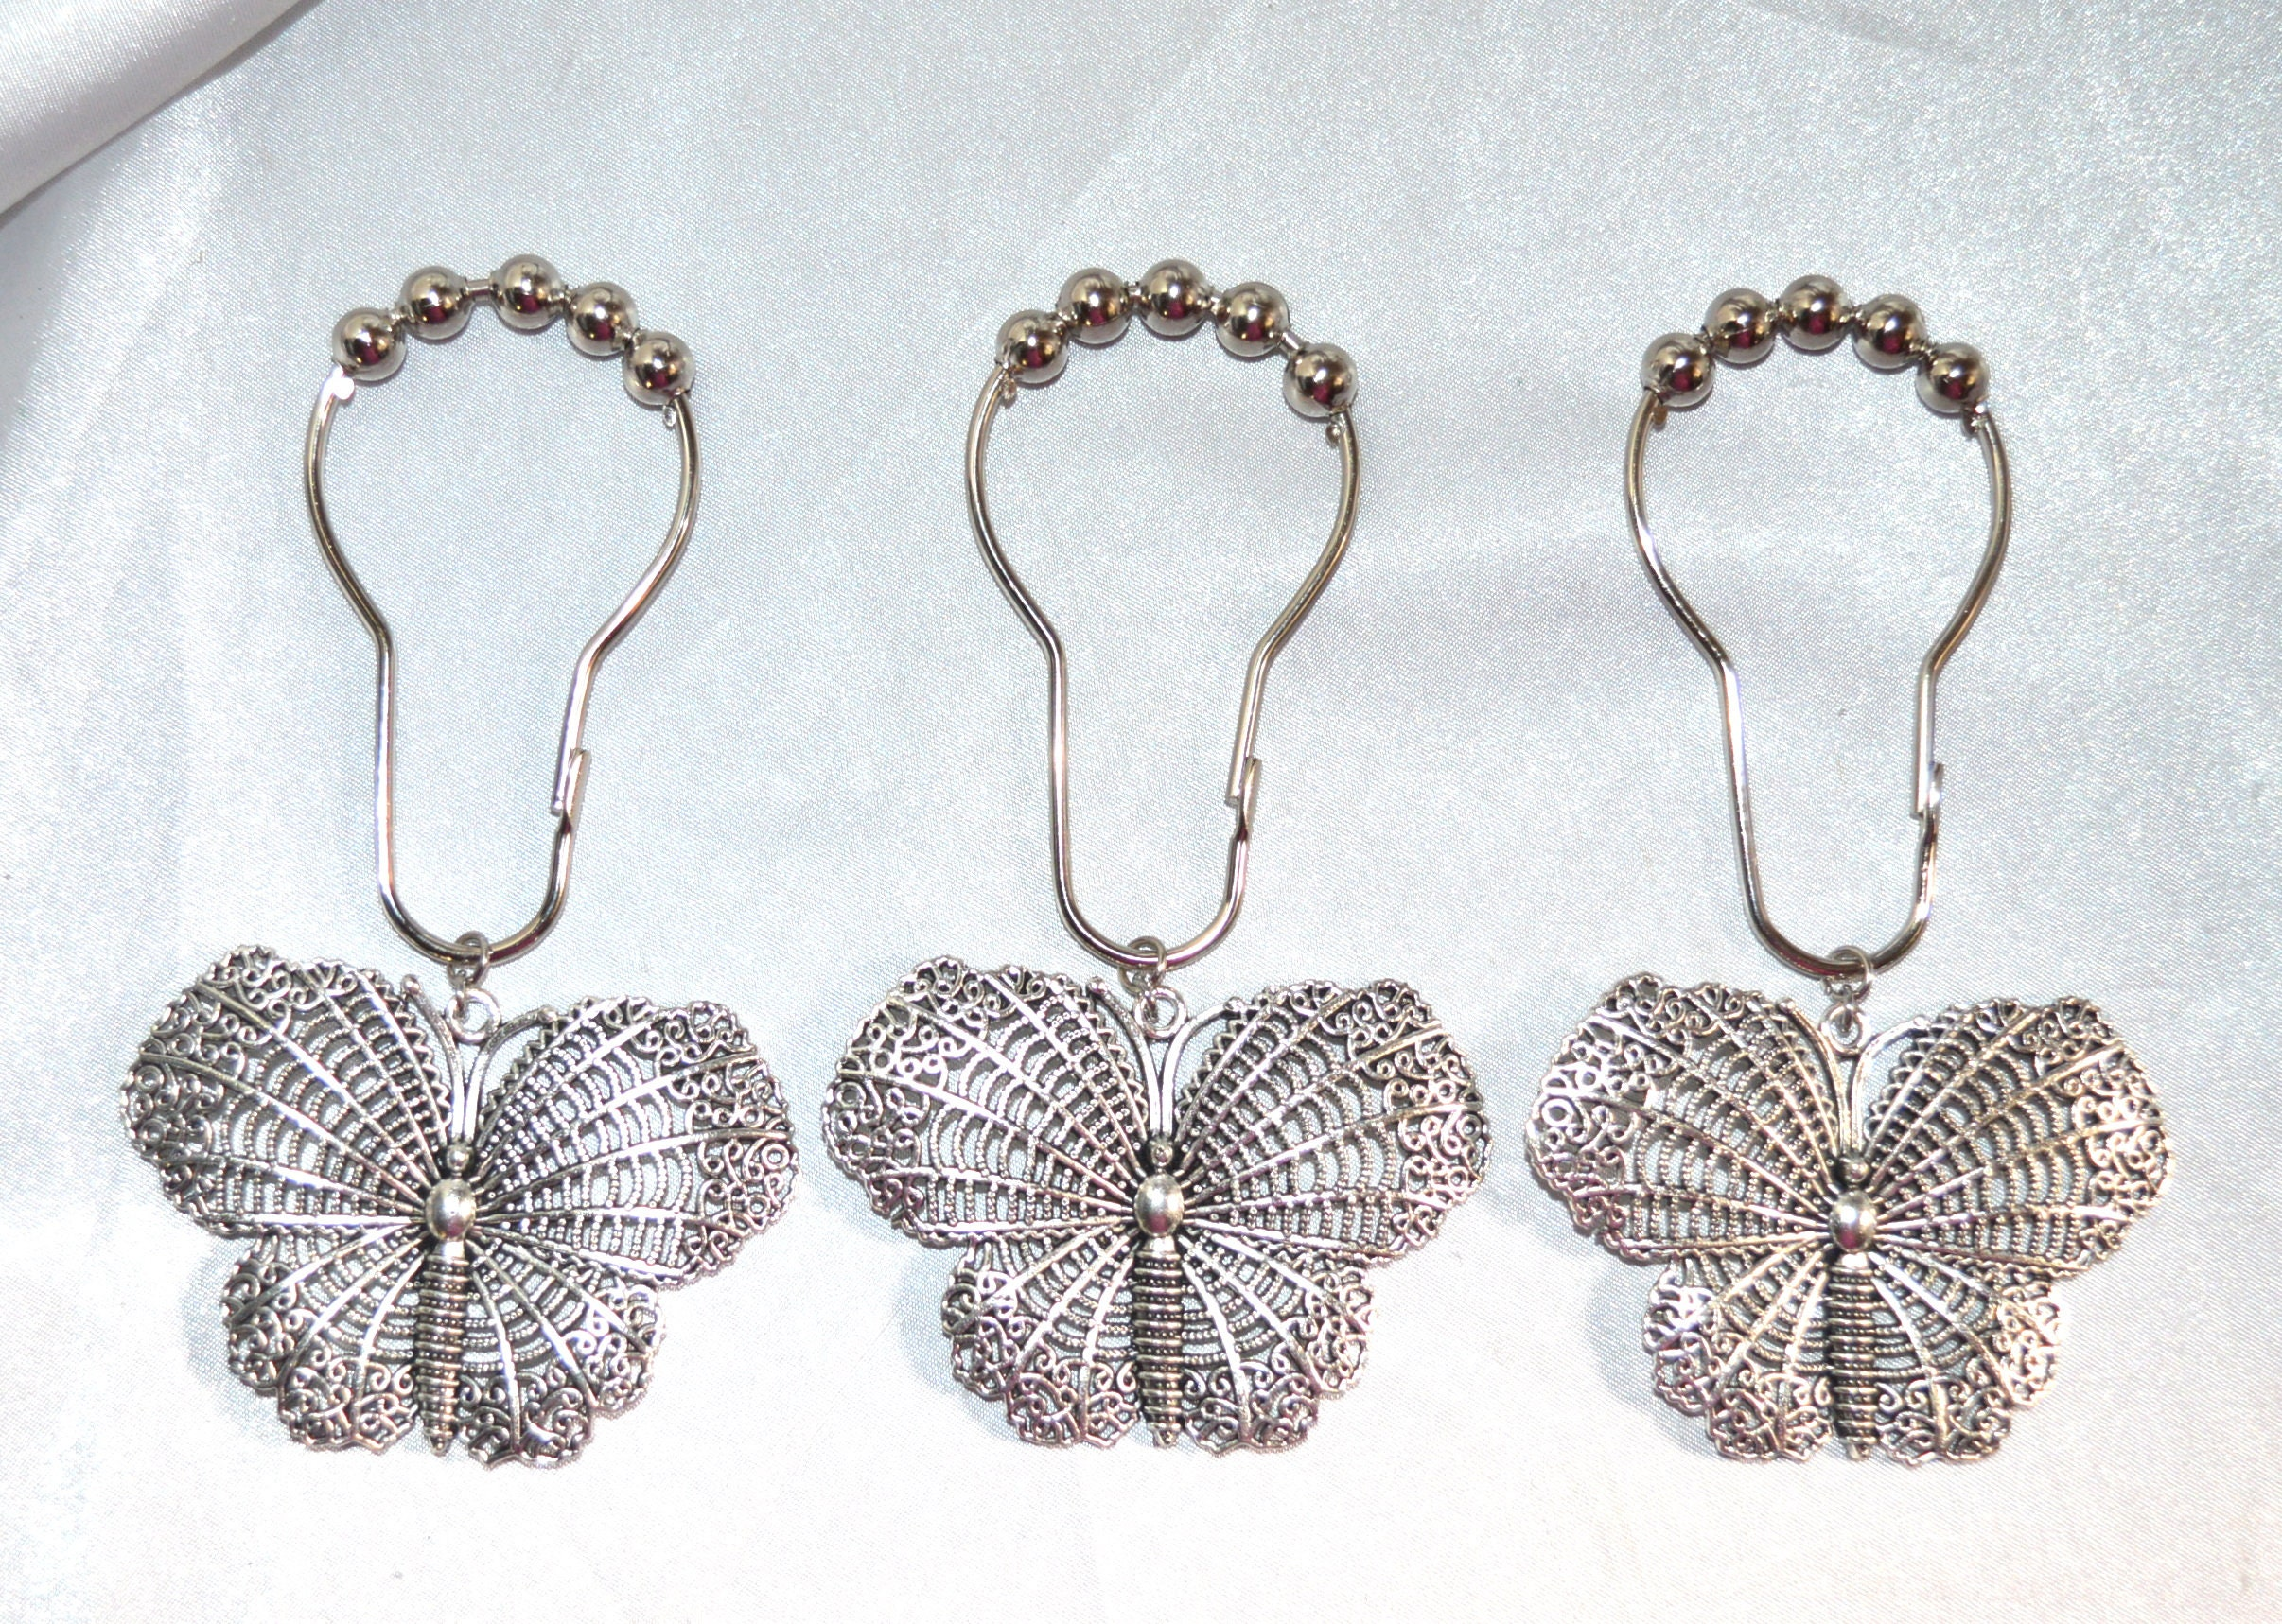 Butterfly Shower Curtain Hooks Silver Filigree Butterflies Set Of 12 Roller Ball Hooks Shower Curtain Rings Garden Nature Insect